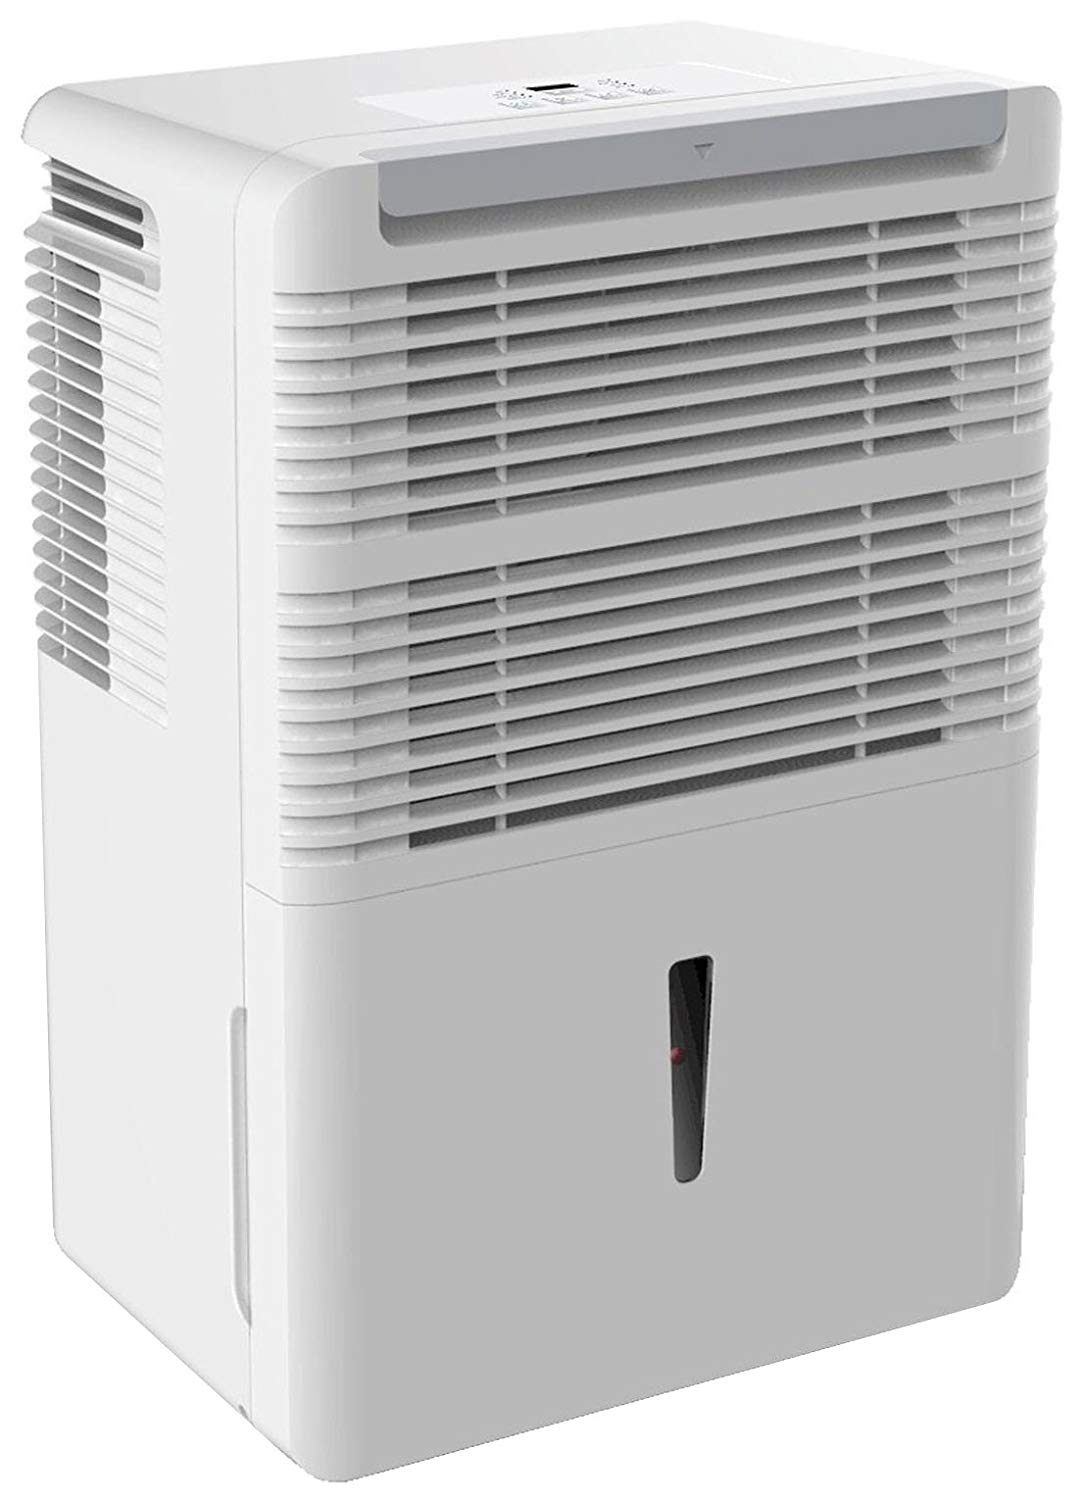 Photo of Guide to Buying Home Dehumidifiers